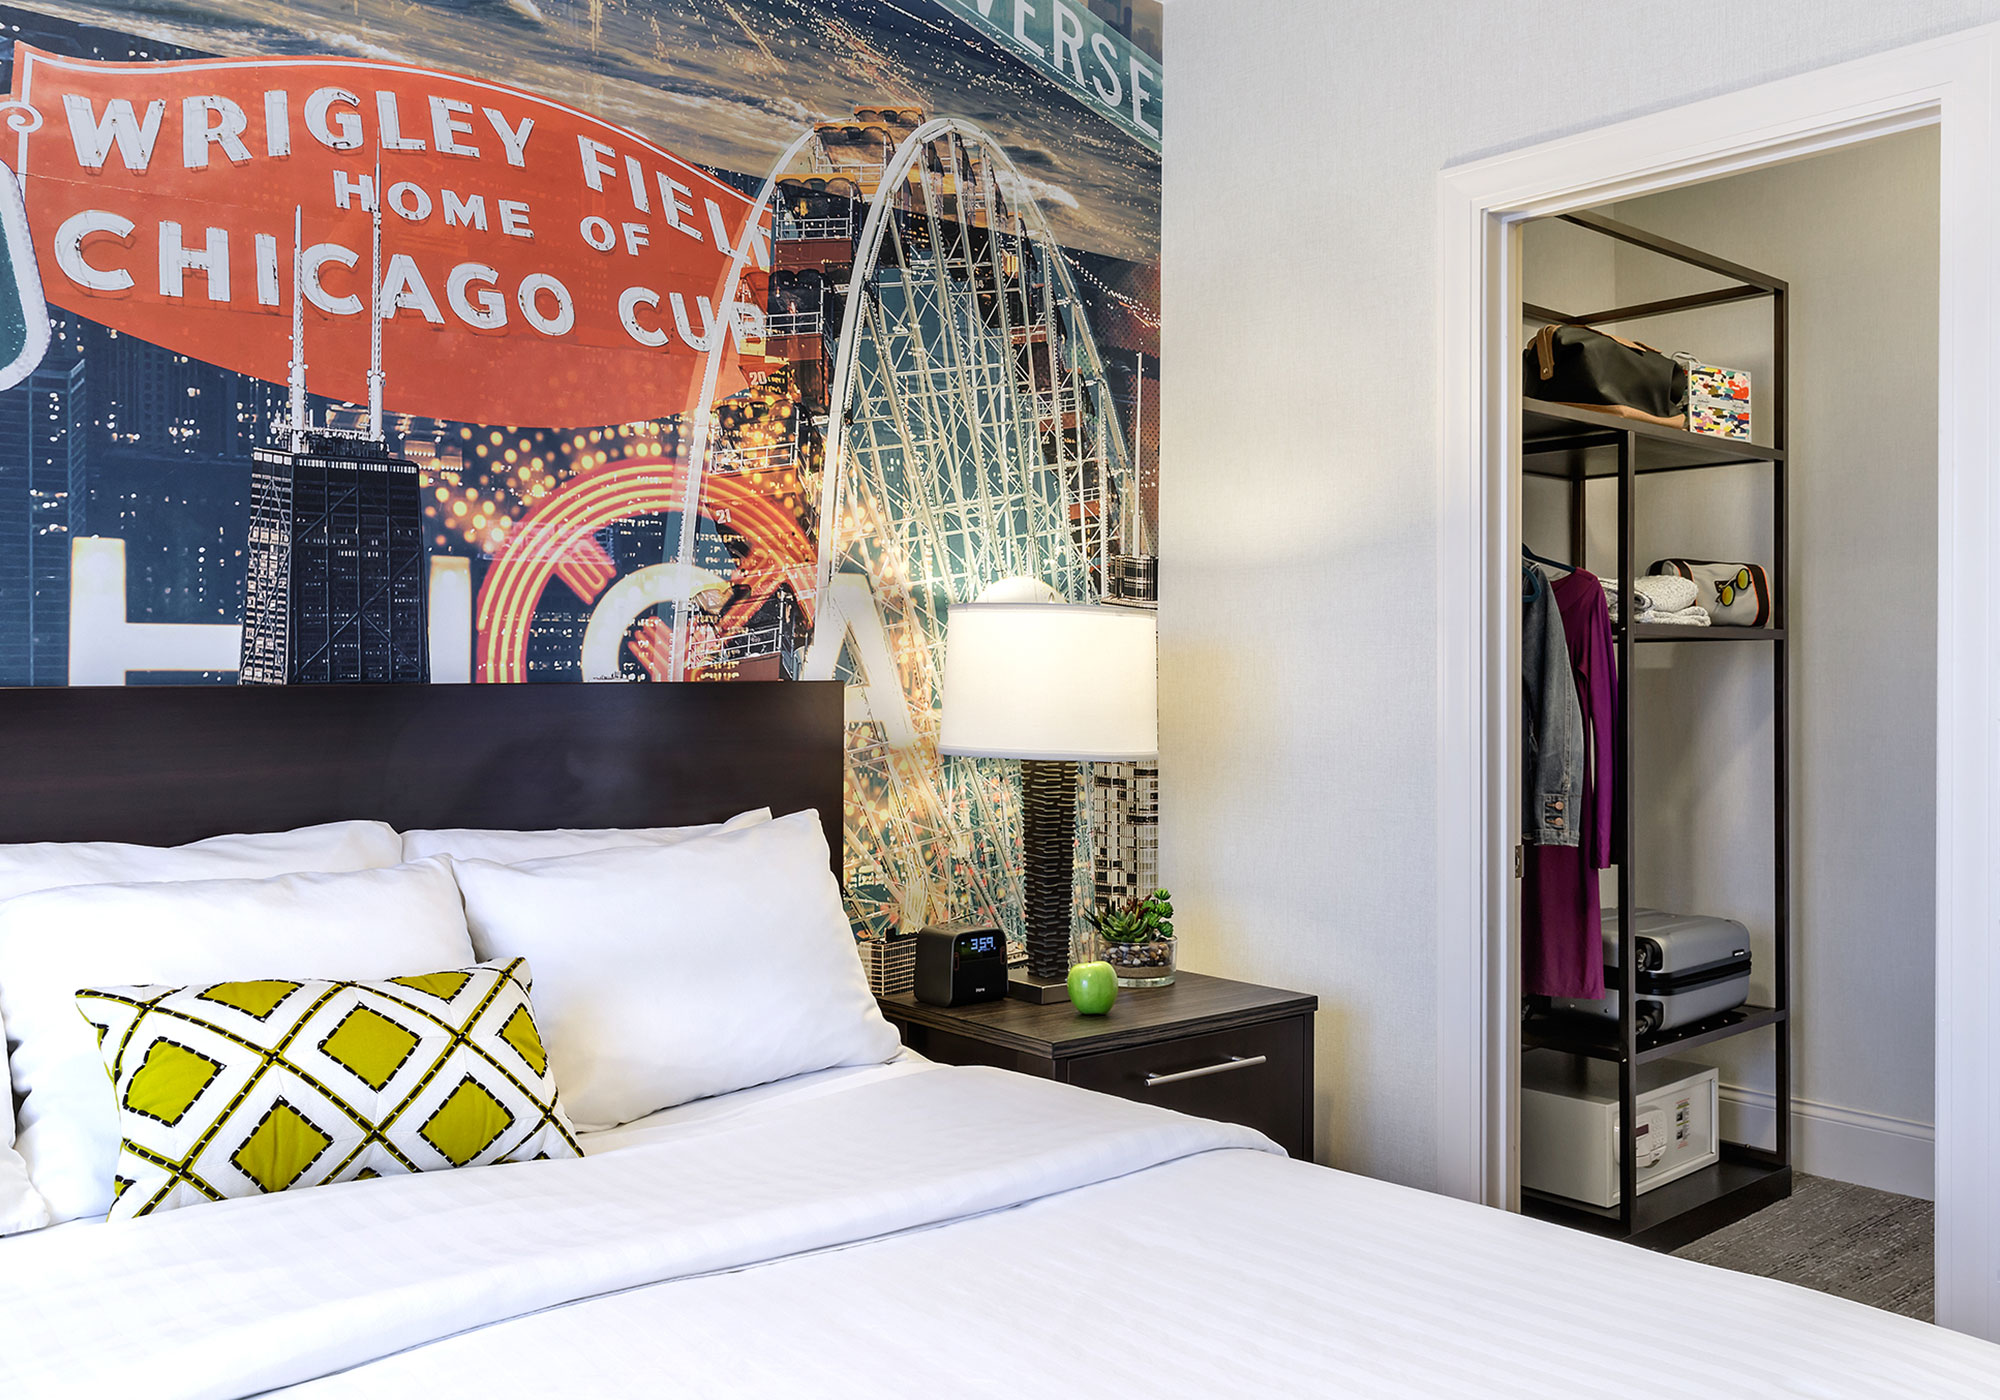 A bed with Wrigley Field art on the wall behind it